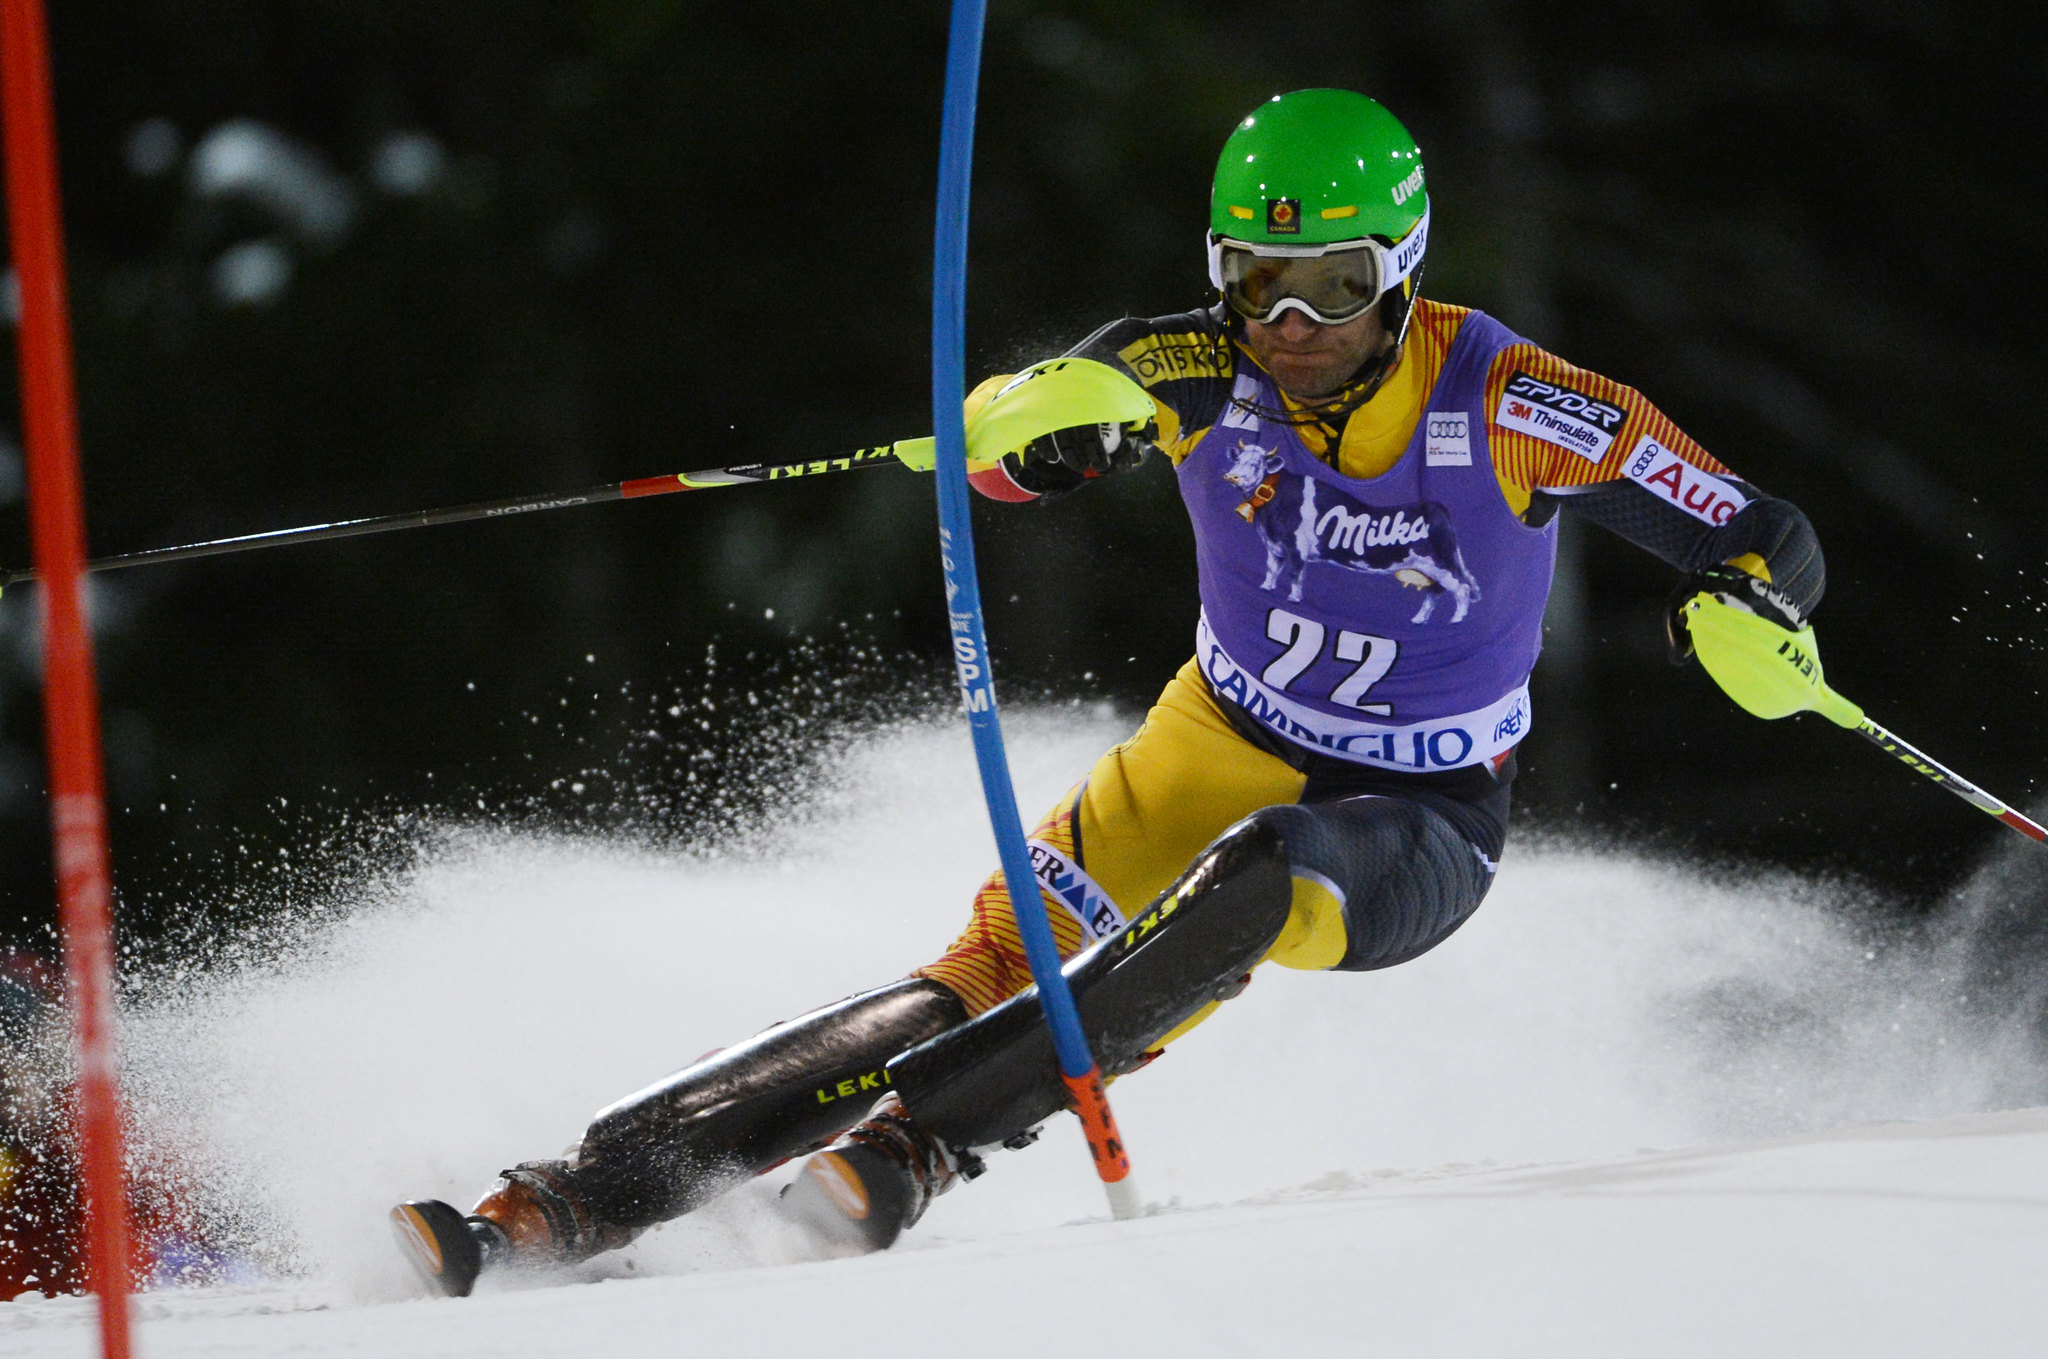 Mike Janyk charges hard during the night slalom in Madonna di Campiglio, Italy.